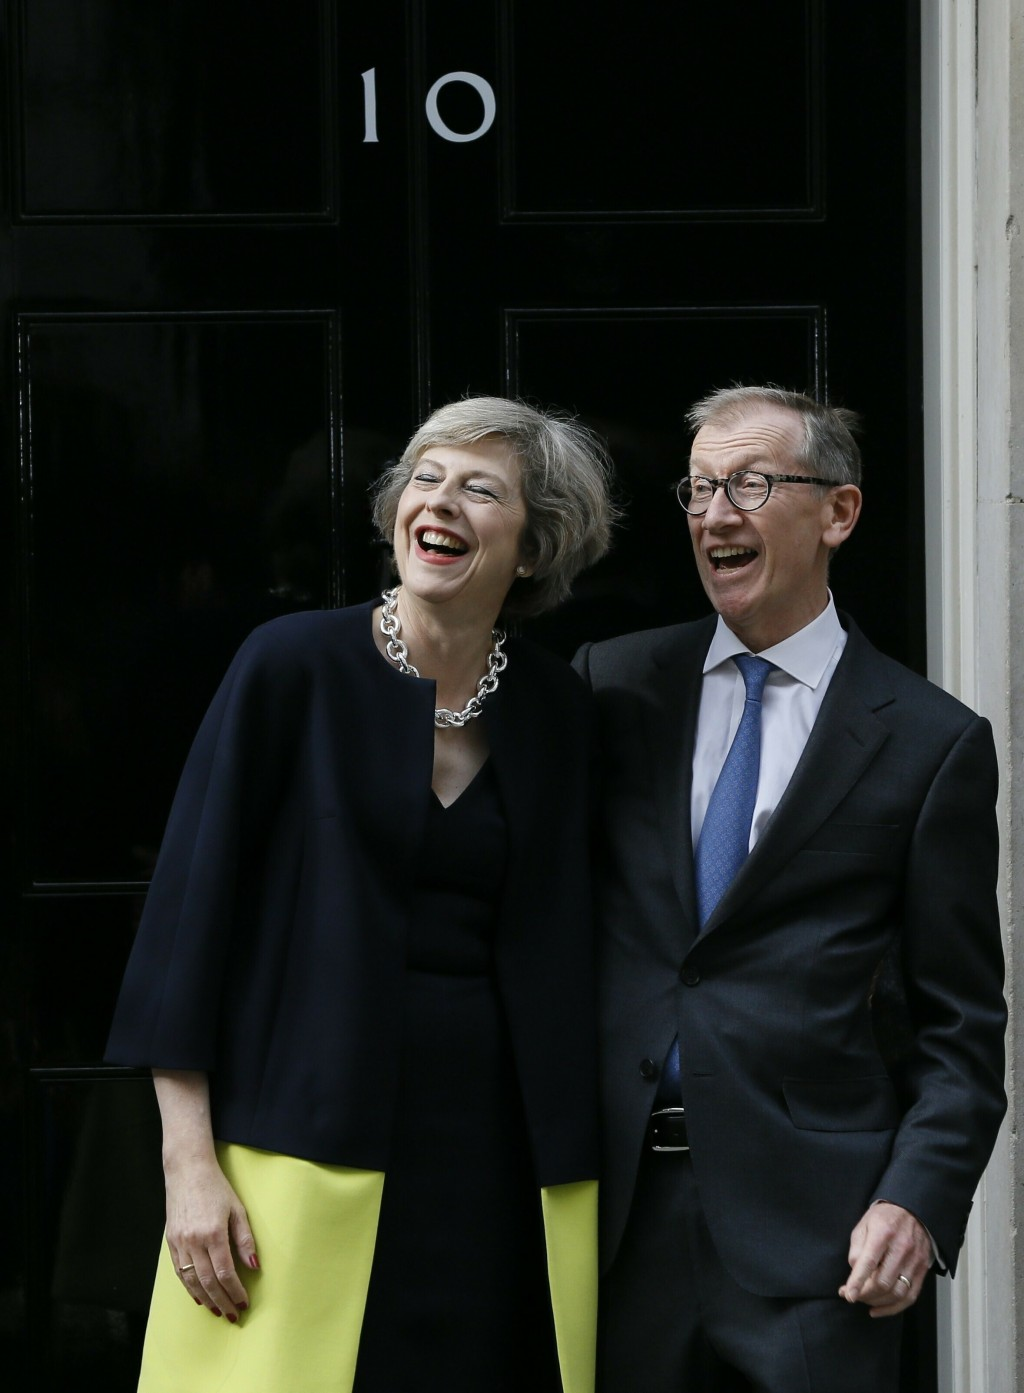 FILE - In this Wednesday, July 13, 2016 file photo, new British Prime Minister Theresa May and her husband Philip May stand on the steps of 10 Downing